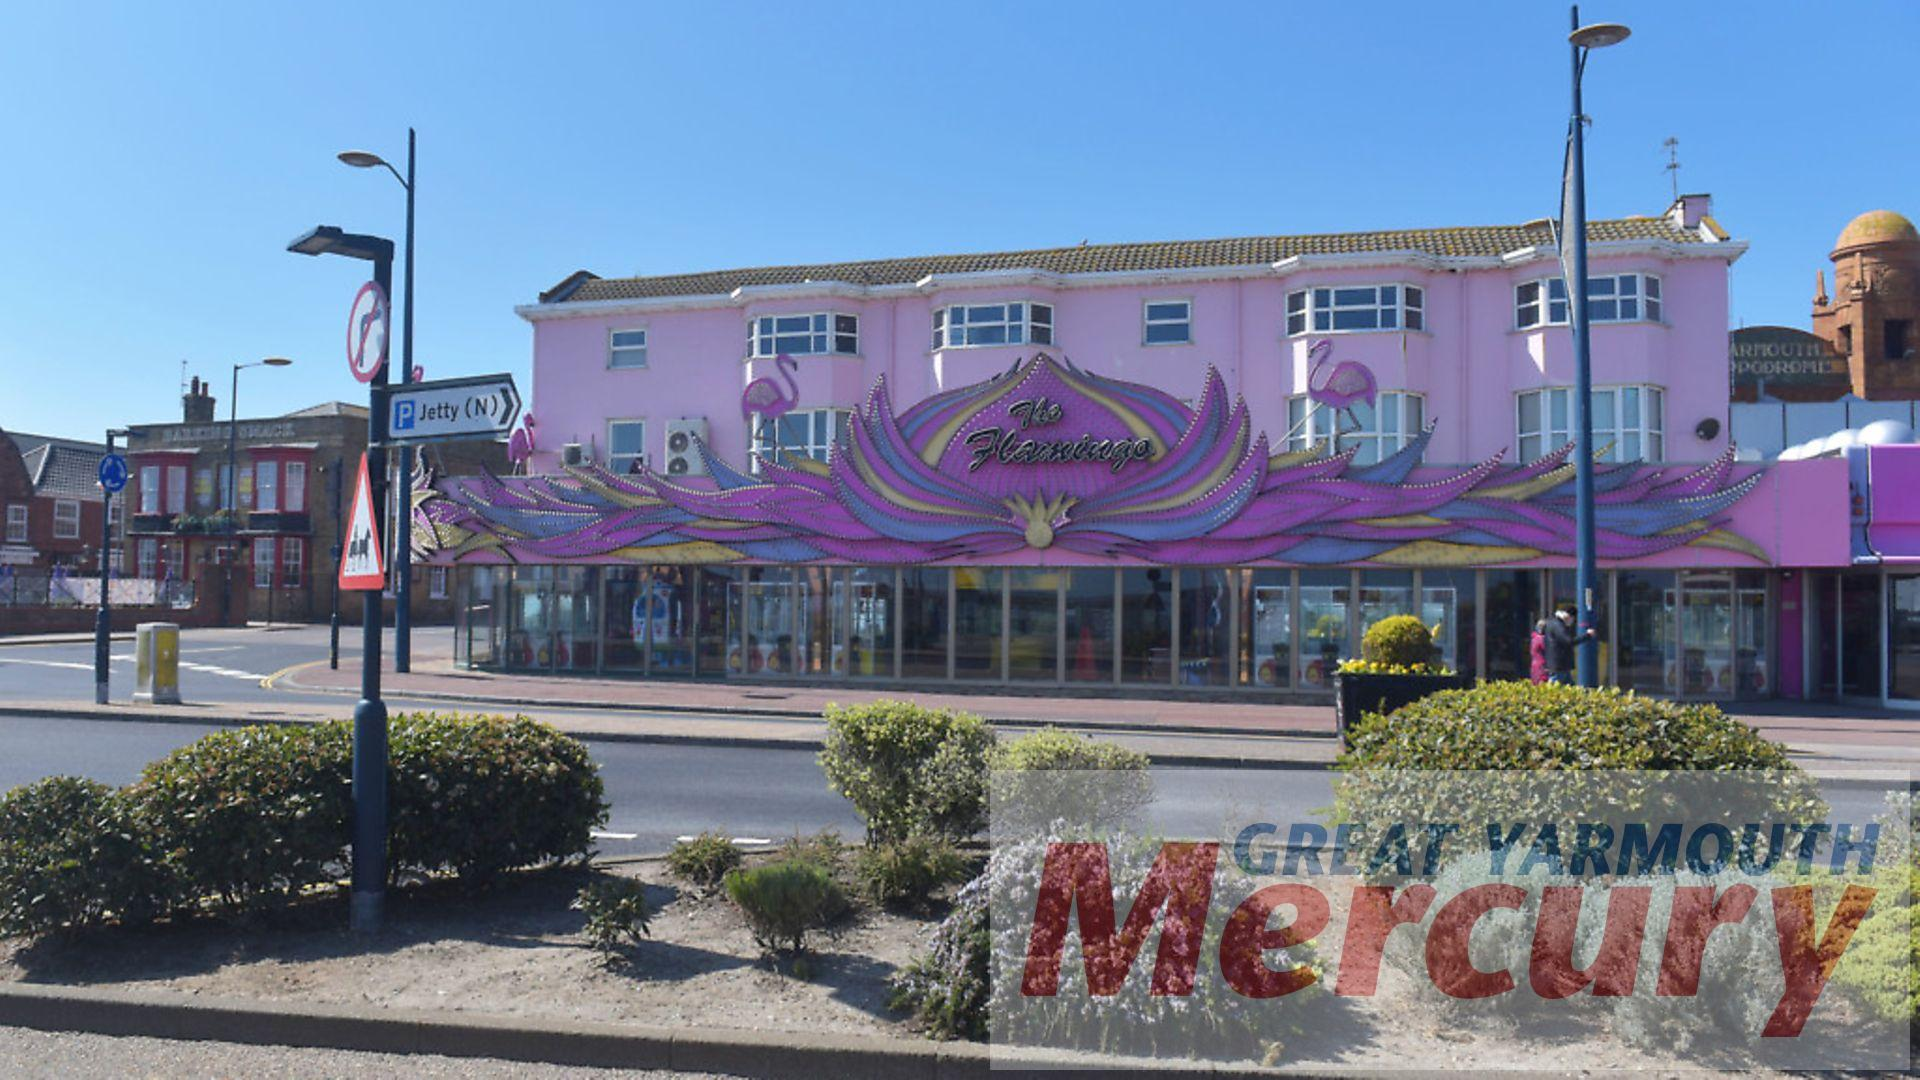 Coronavirus In Norfolk Uk Hotel Managers On Taking In Key Workers In Great Yarmouth Great Yarmouth Mercury